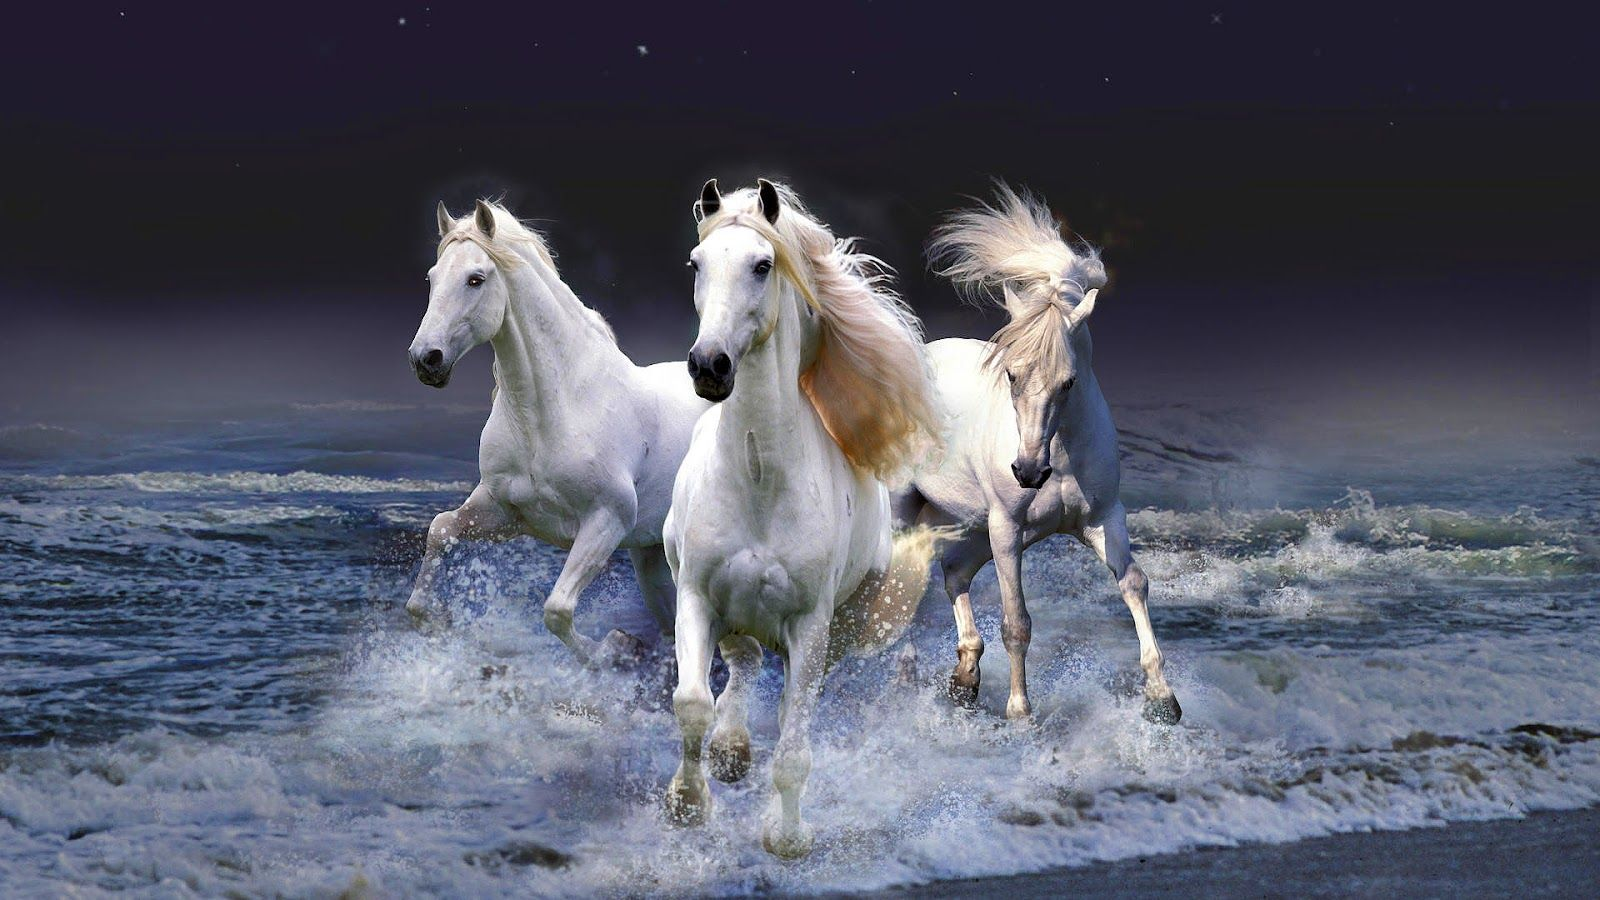 White Horses Running Through Water Or Sea White Horses Horses Horse Wallpaper